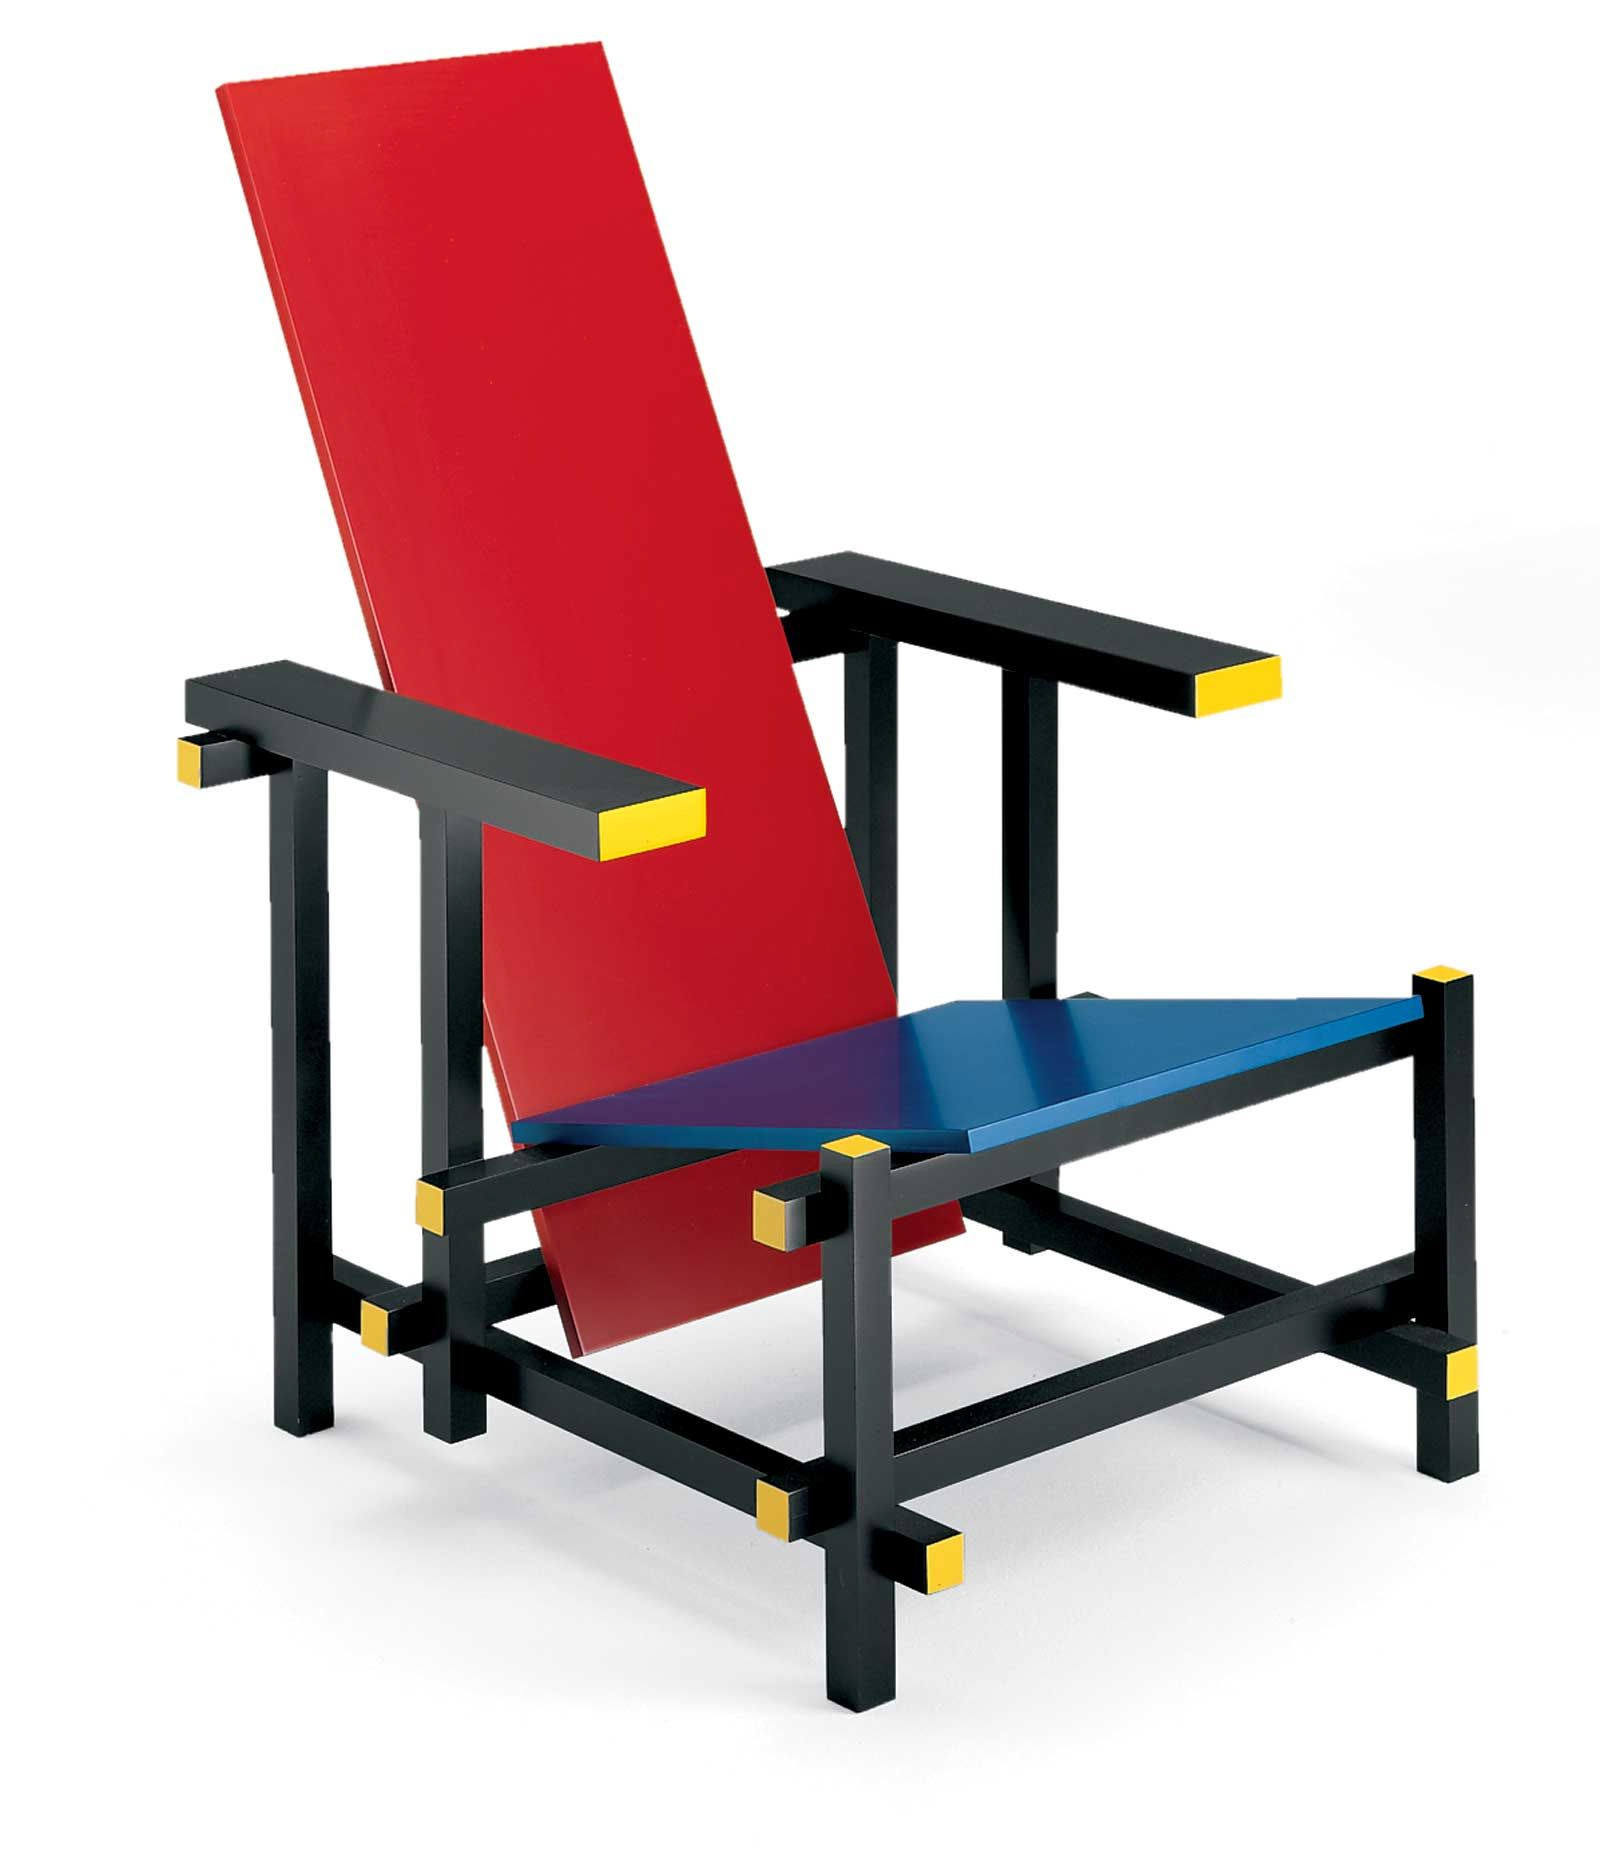 red blue chair covers for winter malik gallery collection gerrit thomas rietveld and